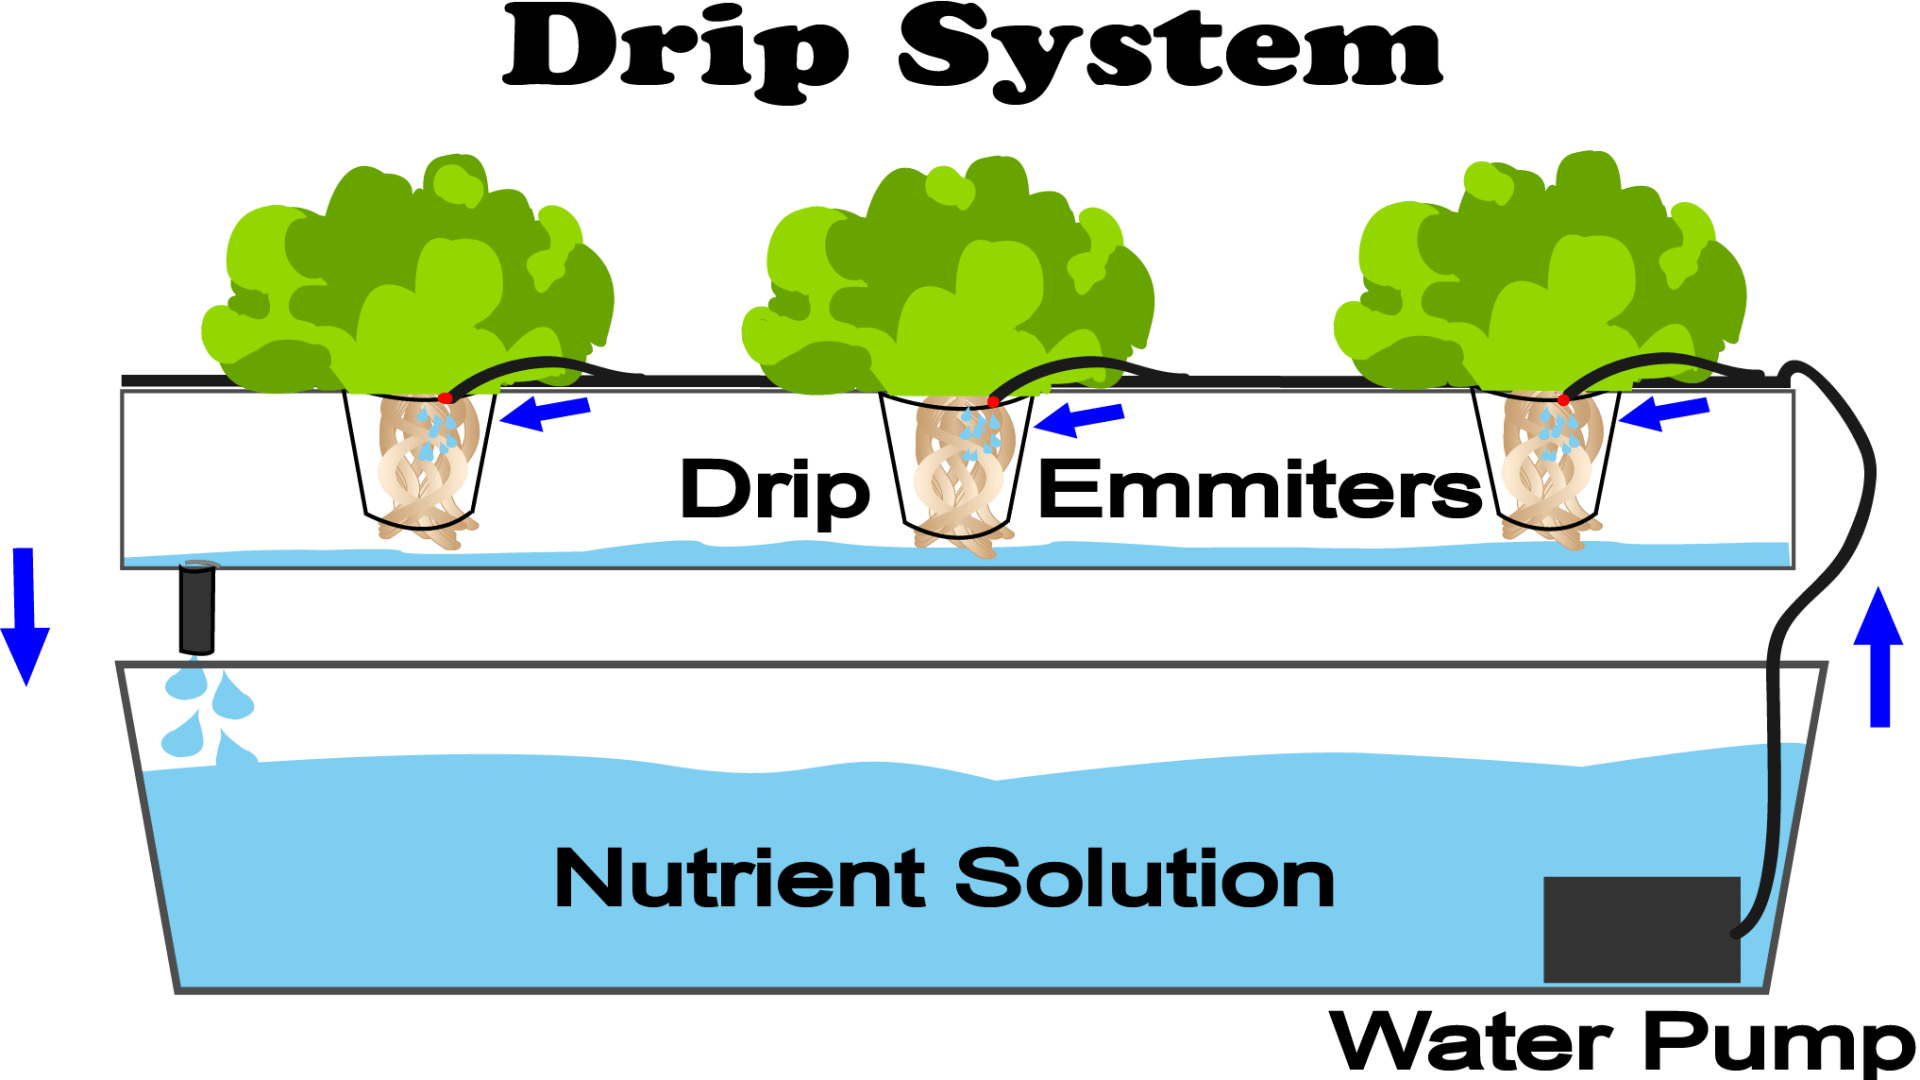 This is a diagram of a drip hydroponic system